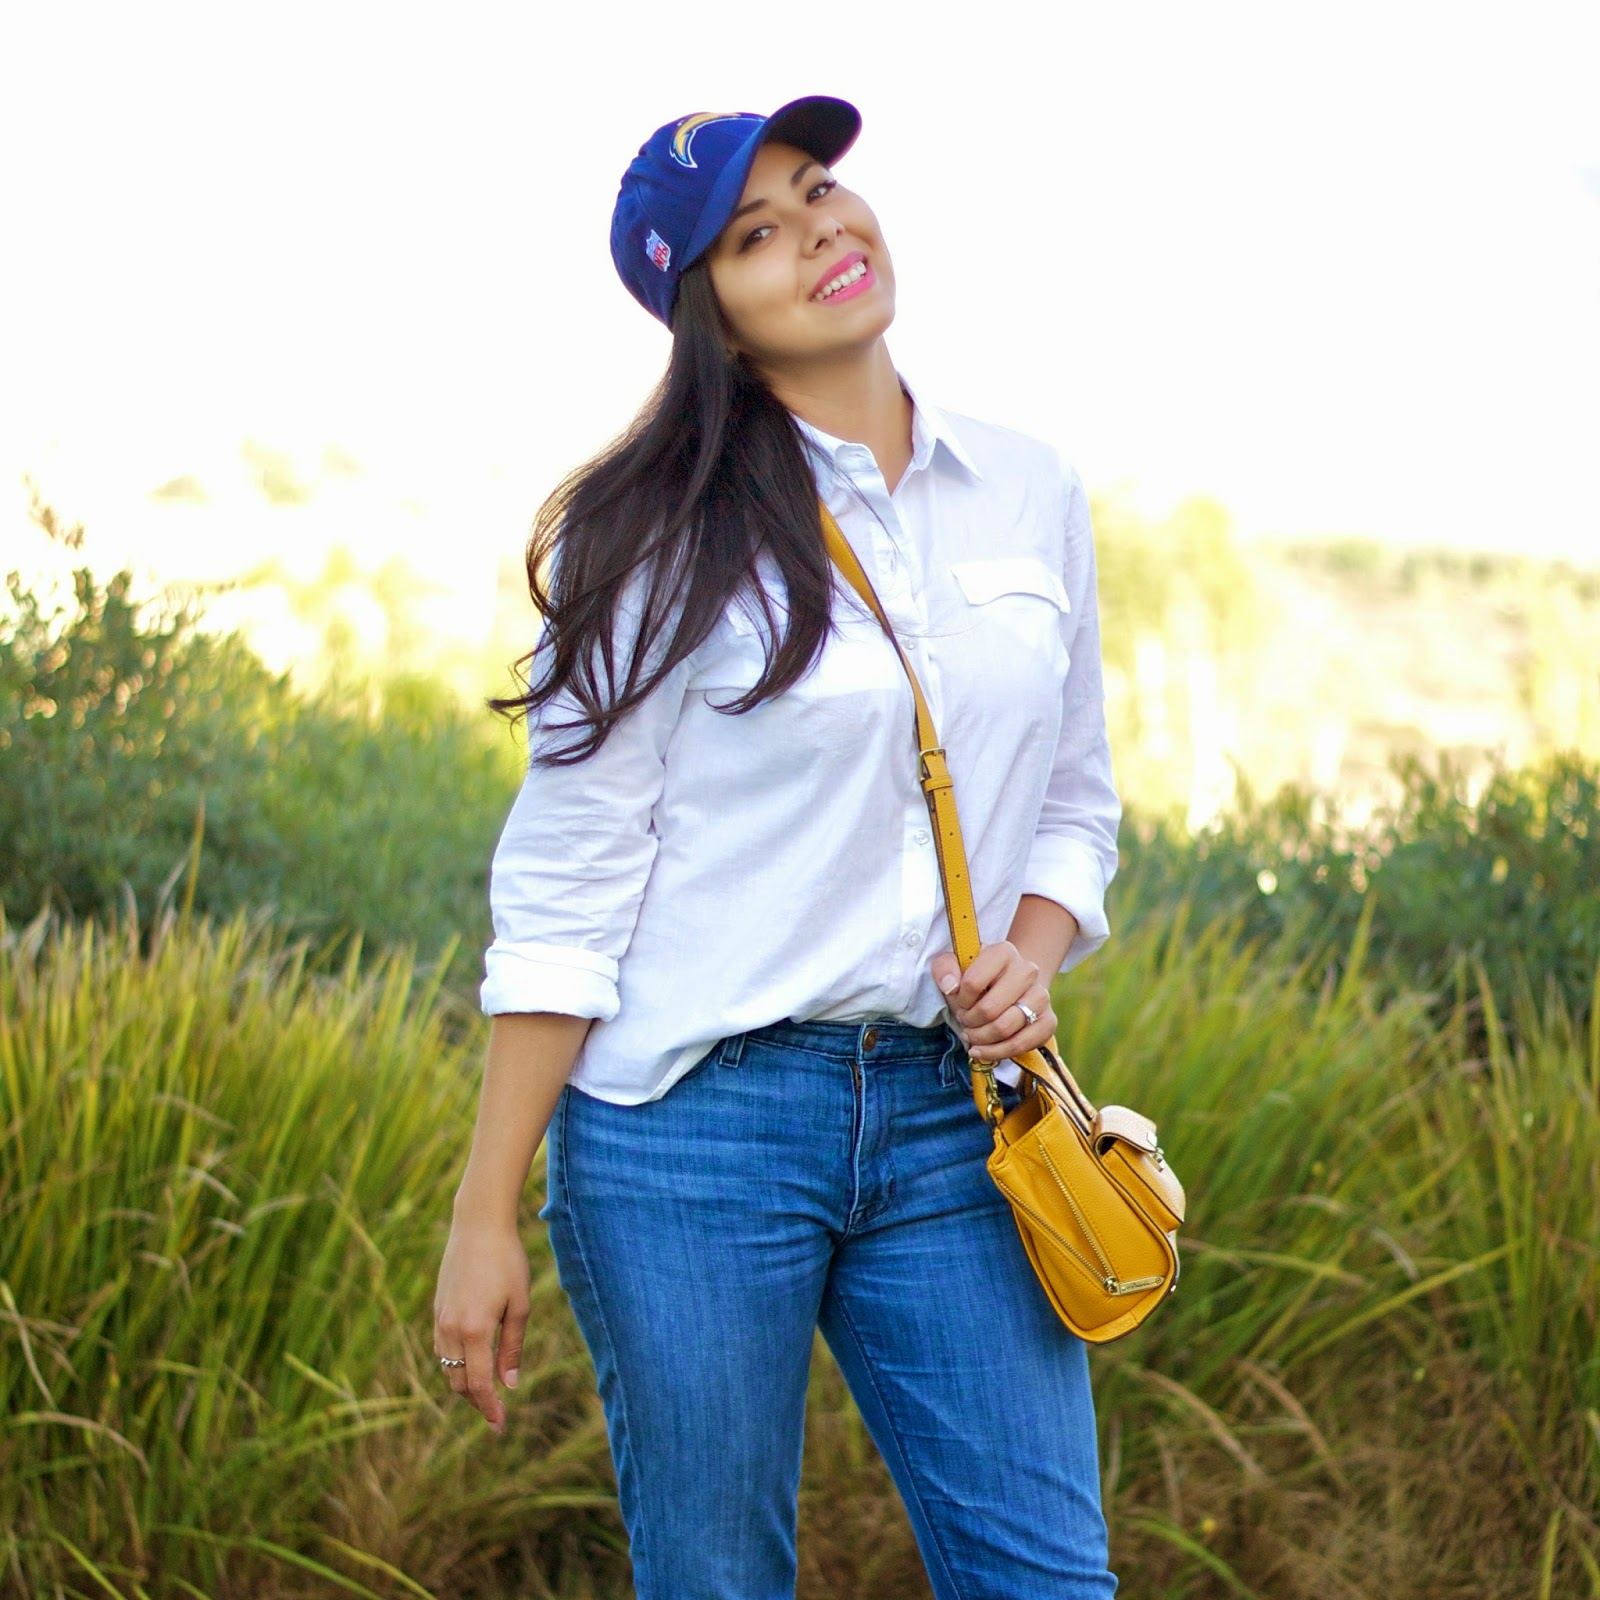 Go Chargers, san diego fashion blogger, san diego style, chargers style, yellow crossbody bag, 3.1 phillip lim yellow bag